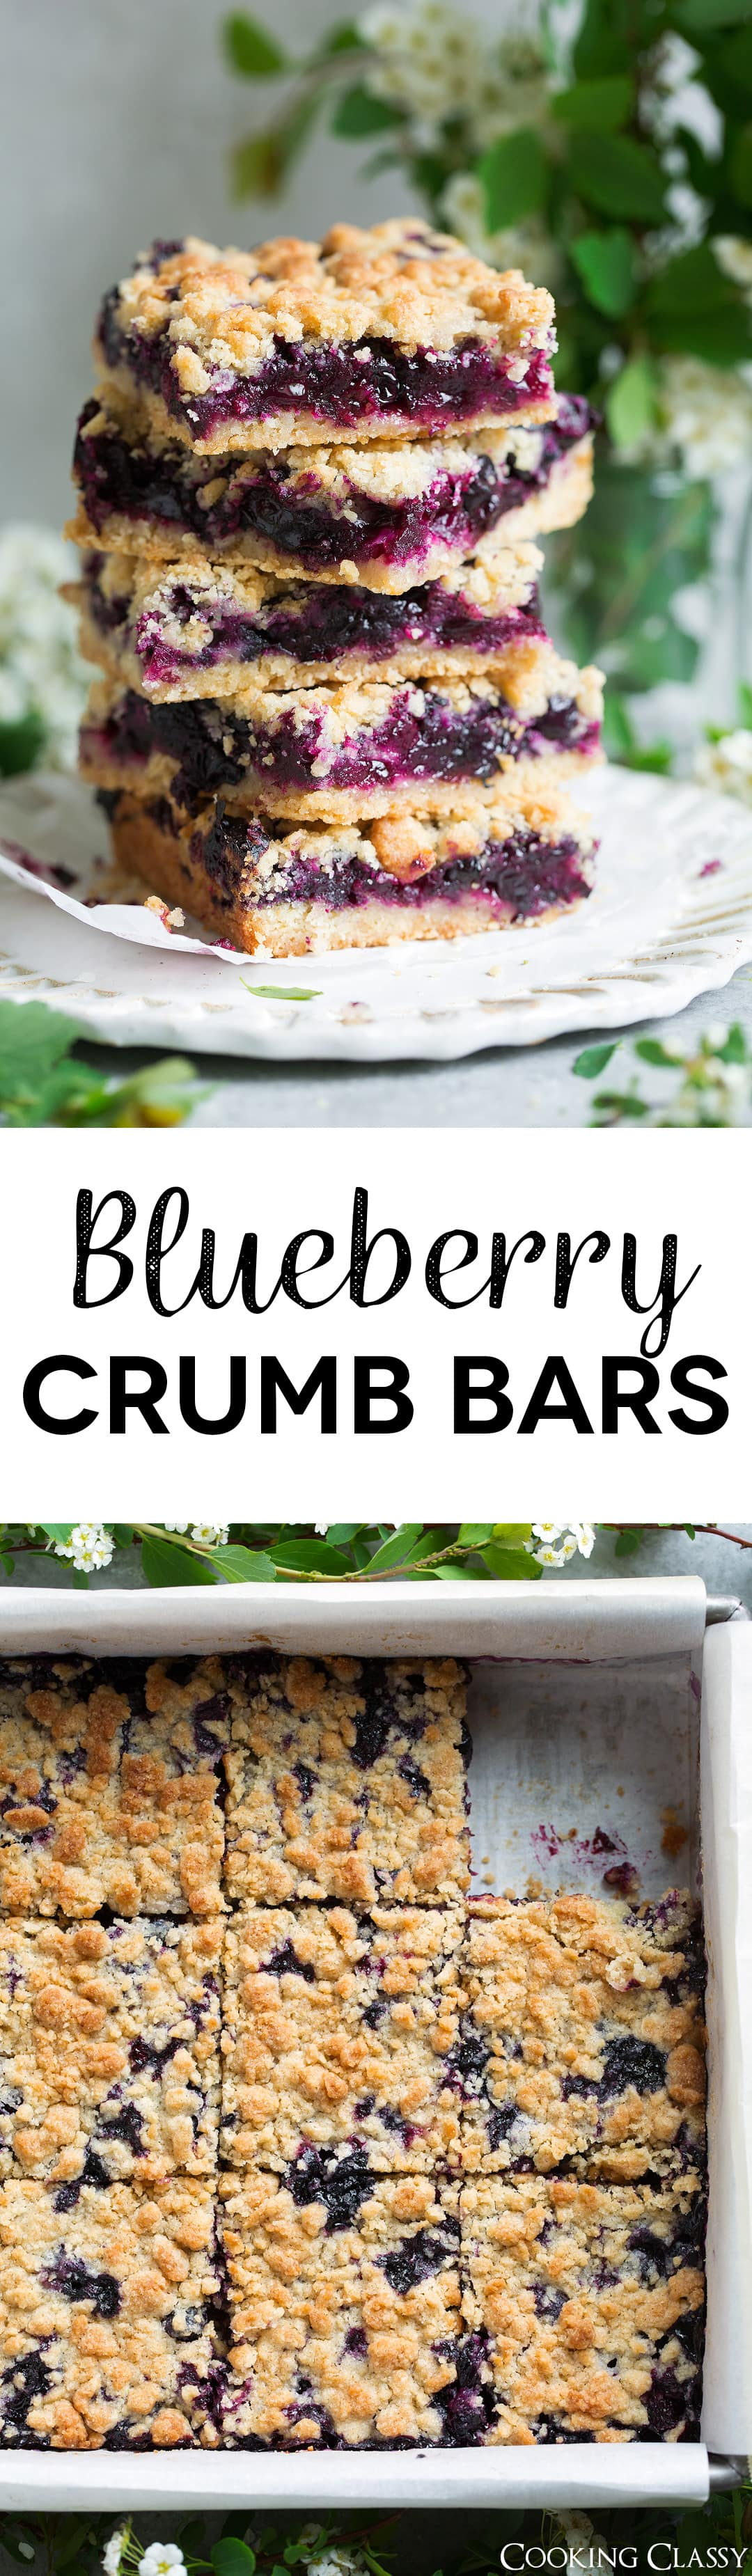 Blueberry Crumb Bars - one of the BEST summer desserts! Here a crisp, buttery cookie-like crumb sandwiches a sweet, fresh, juicy blueberry filling and these things just couldn't get any better! They're the perfect use for all those fresh summer blueberries. I've been making them for years and everyone always loves them!